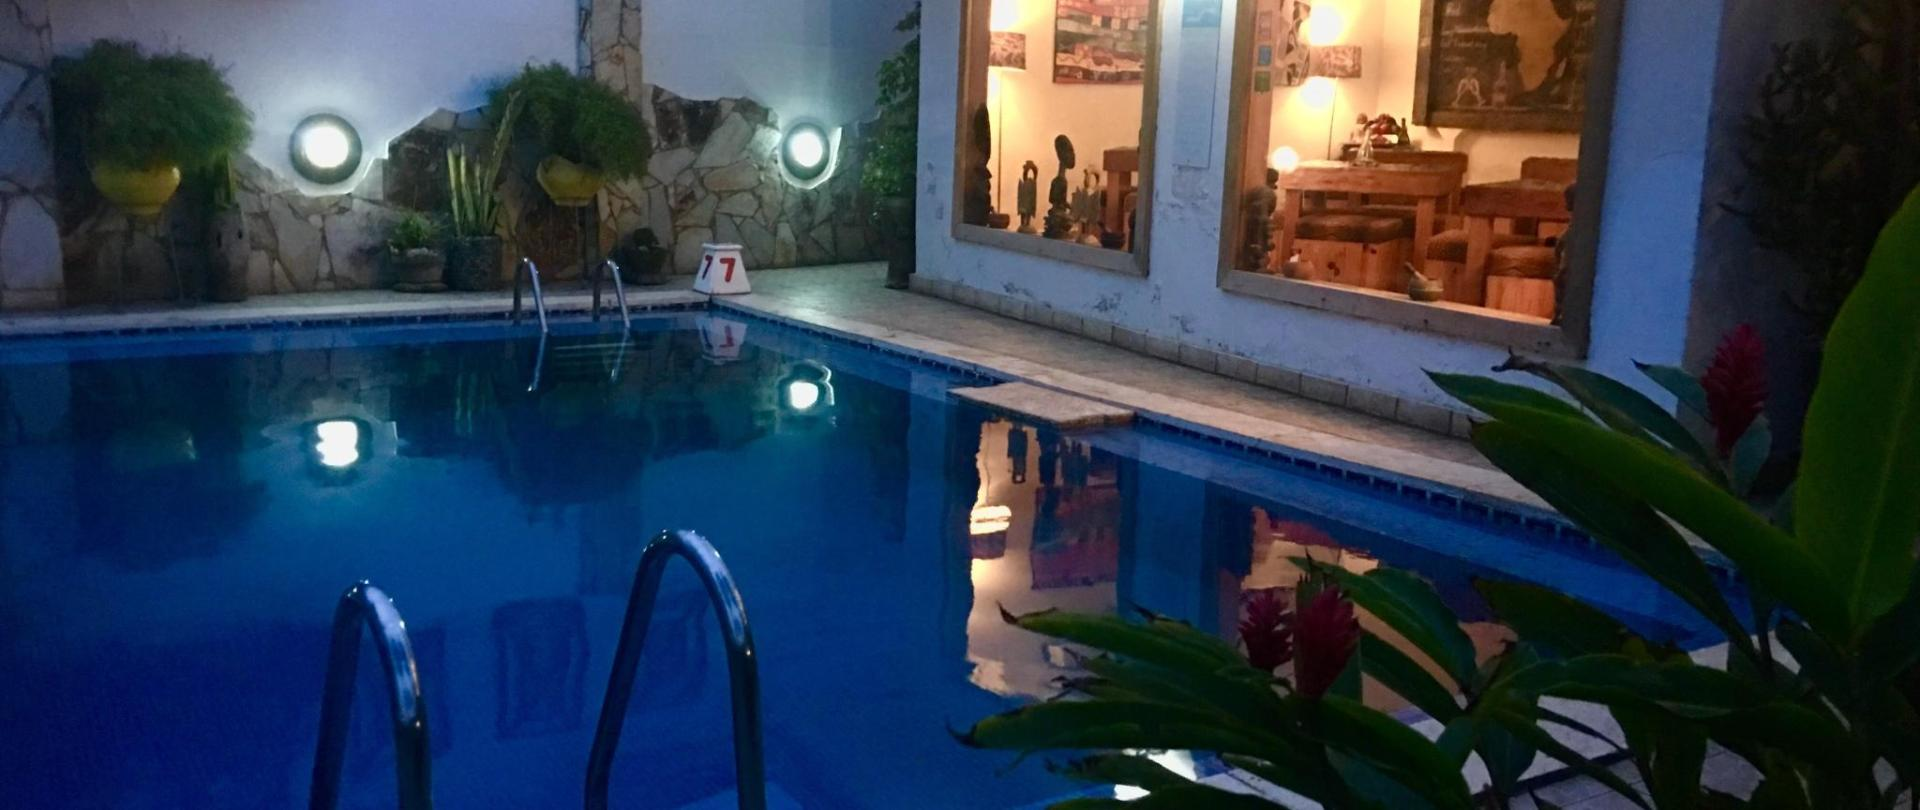 piscina noite evening.jpg